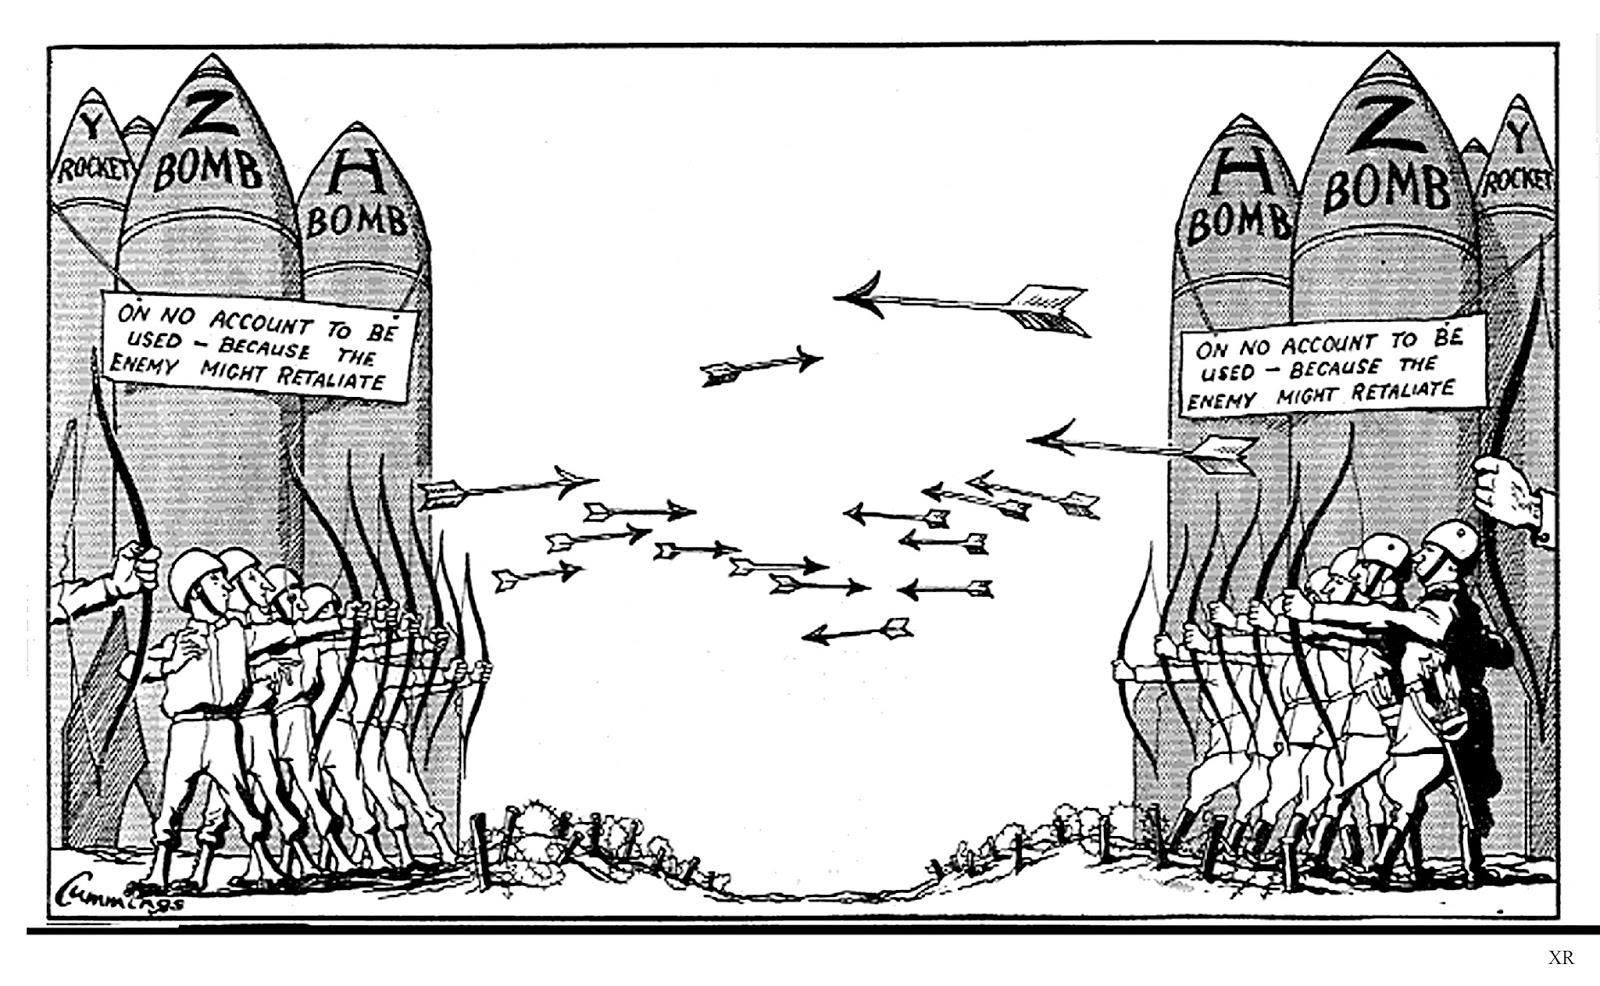 Cartoon Mocking The Cold War Relationship Between Russia